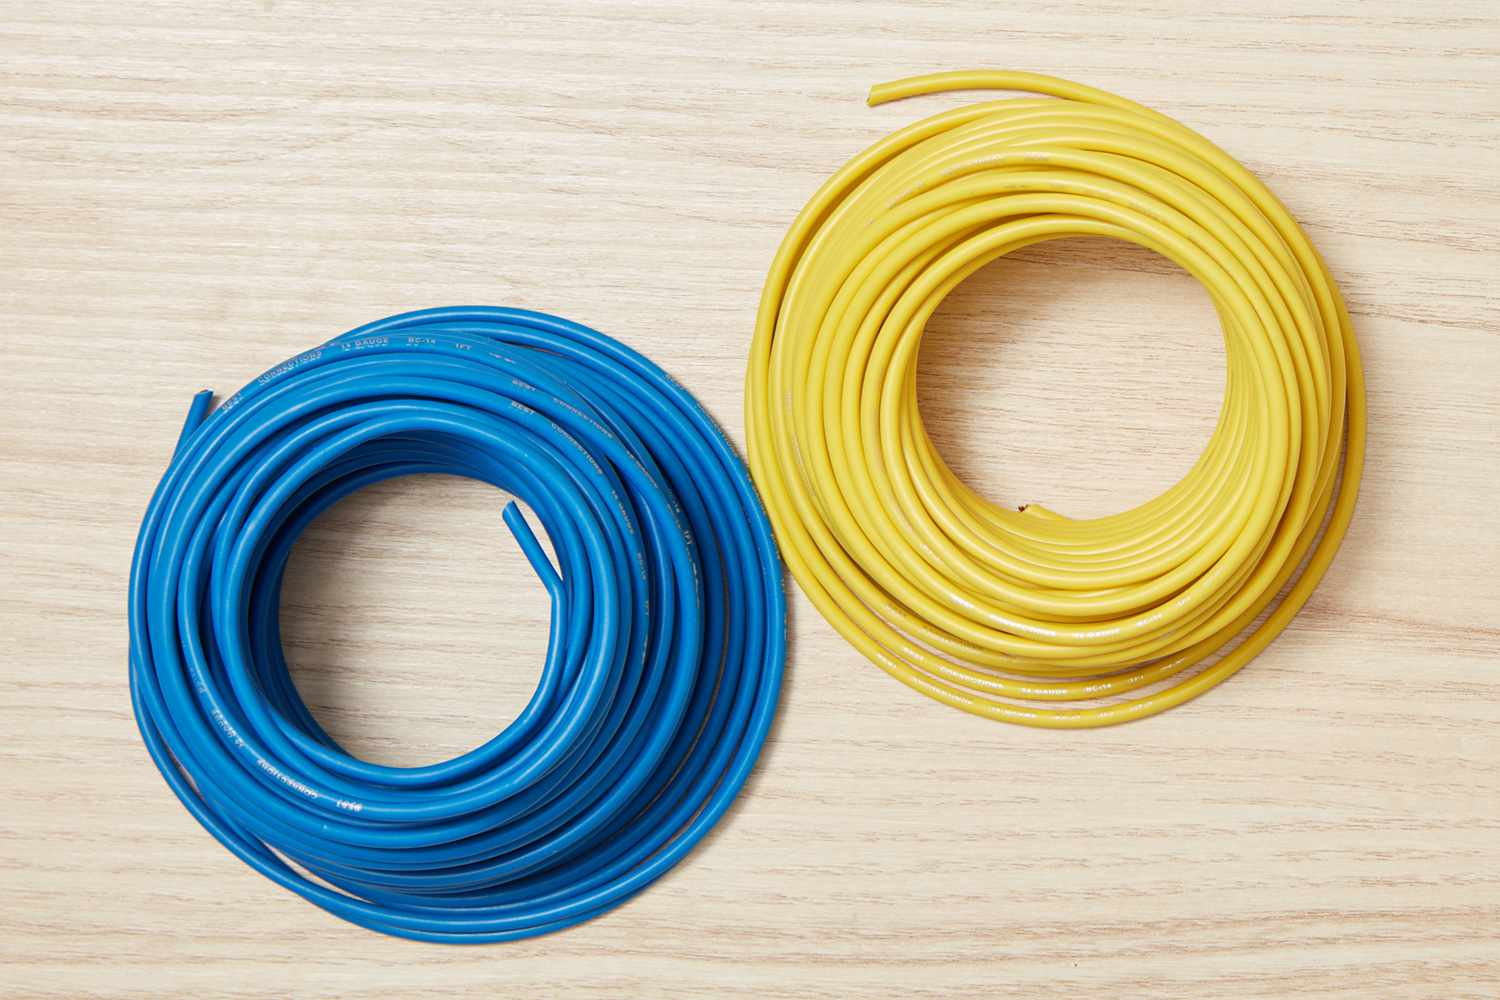 Blue and yellow electrical wires